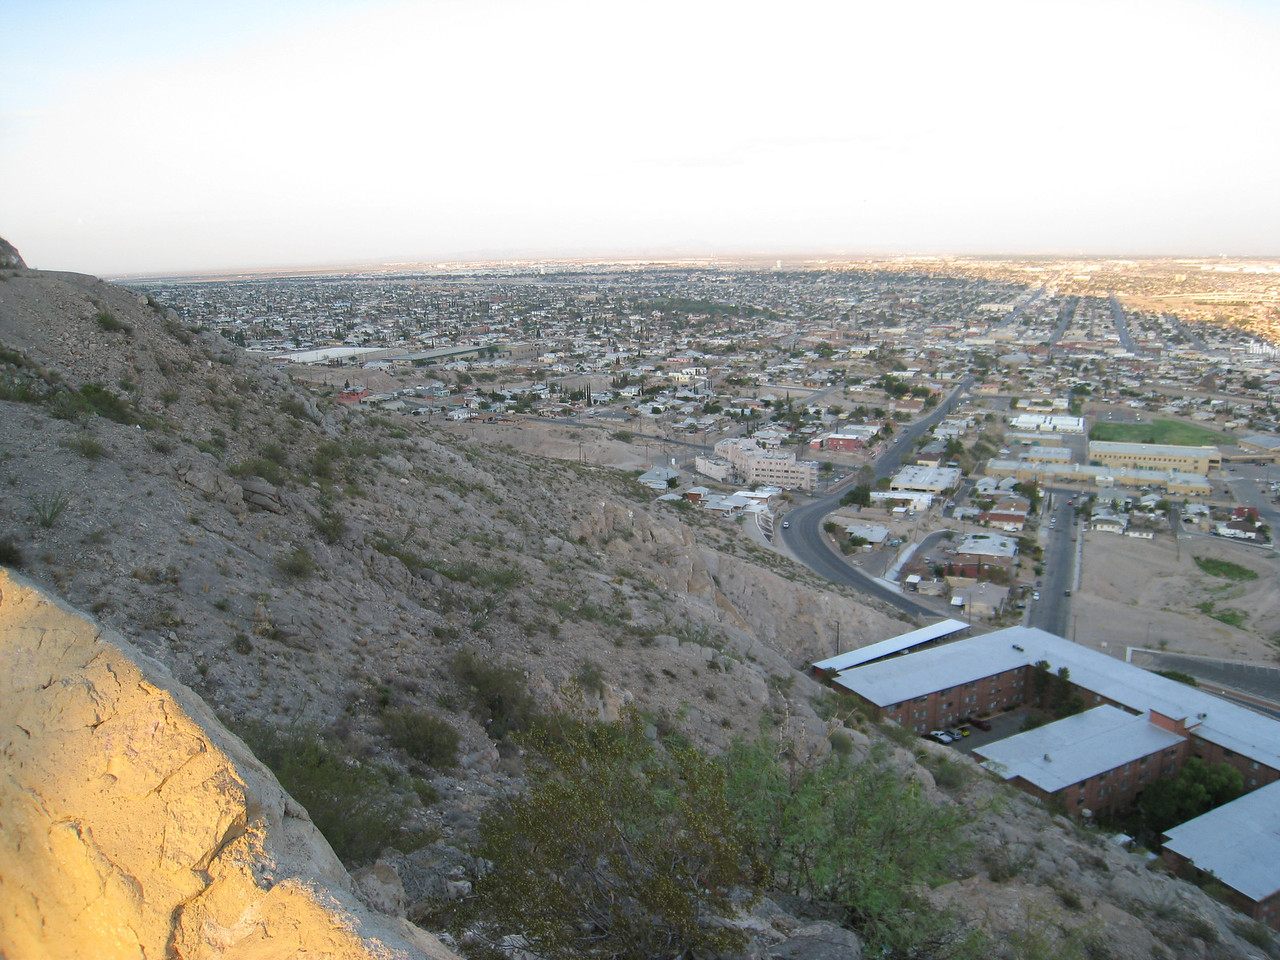 View of east El Paso from Scenic Drive